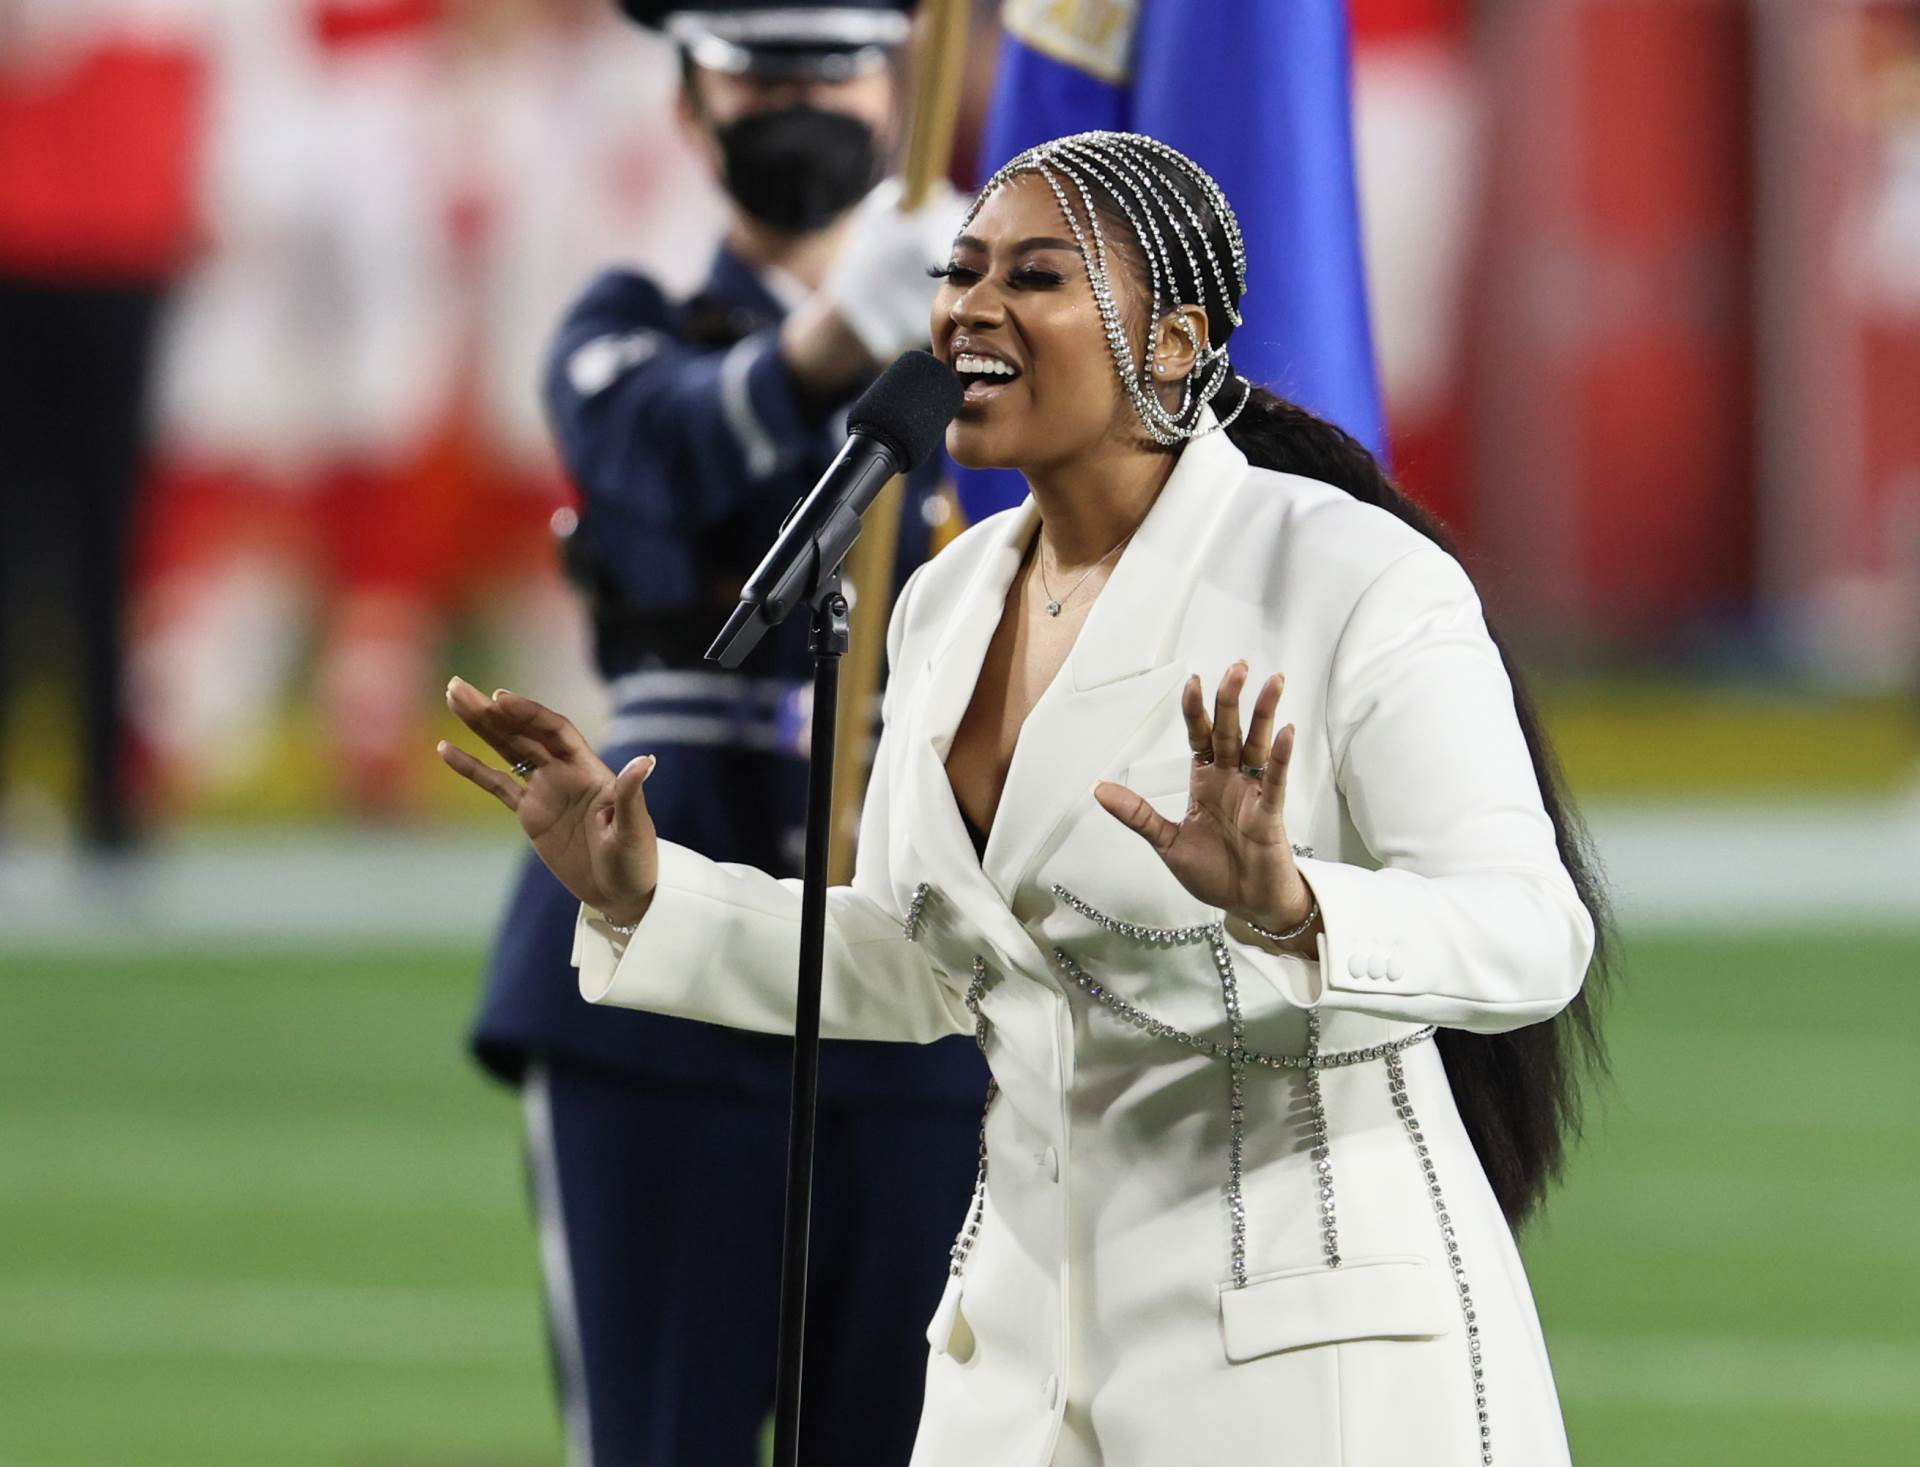 Feb 7, 2021; Tampa, FL, USA; Recording artist Jazmine Sullivan performs the national anthem before Super Bowl LV between the Tampa Bay Buccaneers and the Kansas City Chiefs at Raymond James Stadium.,Image: 589497318, License: Rights-managed, Restrictions: *** World Rights ***, Model Release: no, Credit line: USA TODAY Network / ddp USA / Profimedia